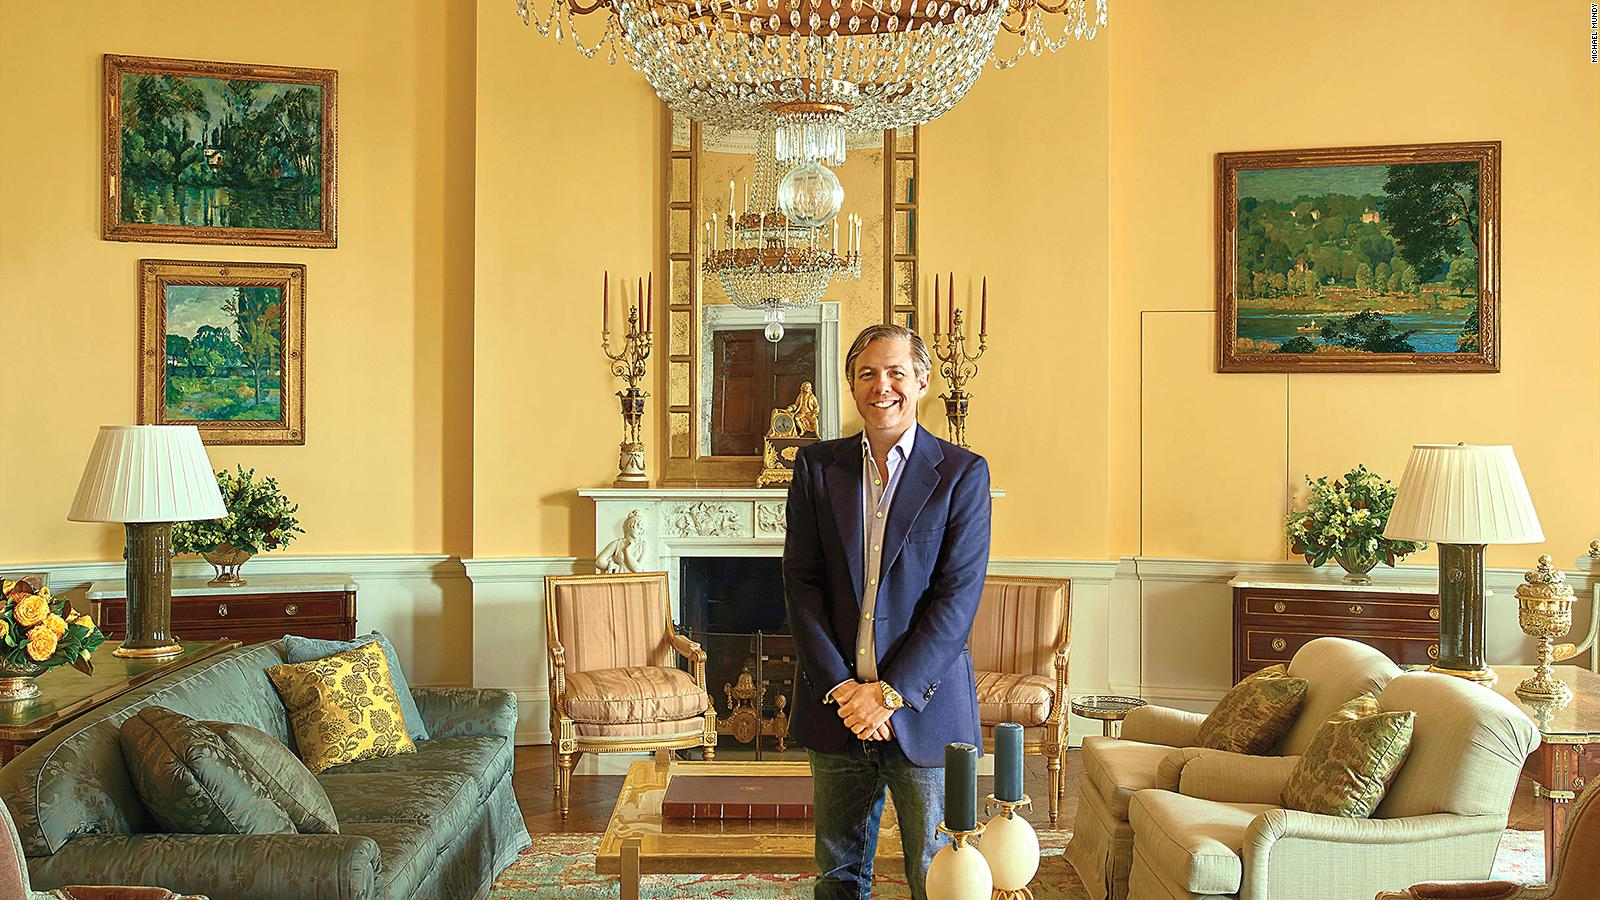 Michael S Smith The Obamas Decorator In Chief Reflects On 8 Years At The White House Cnn Style